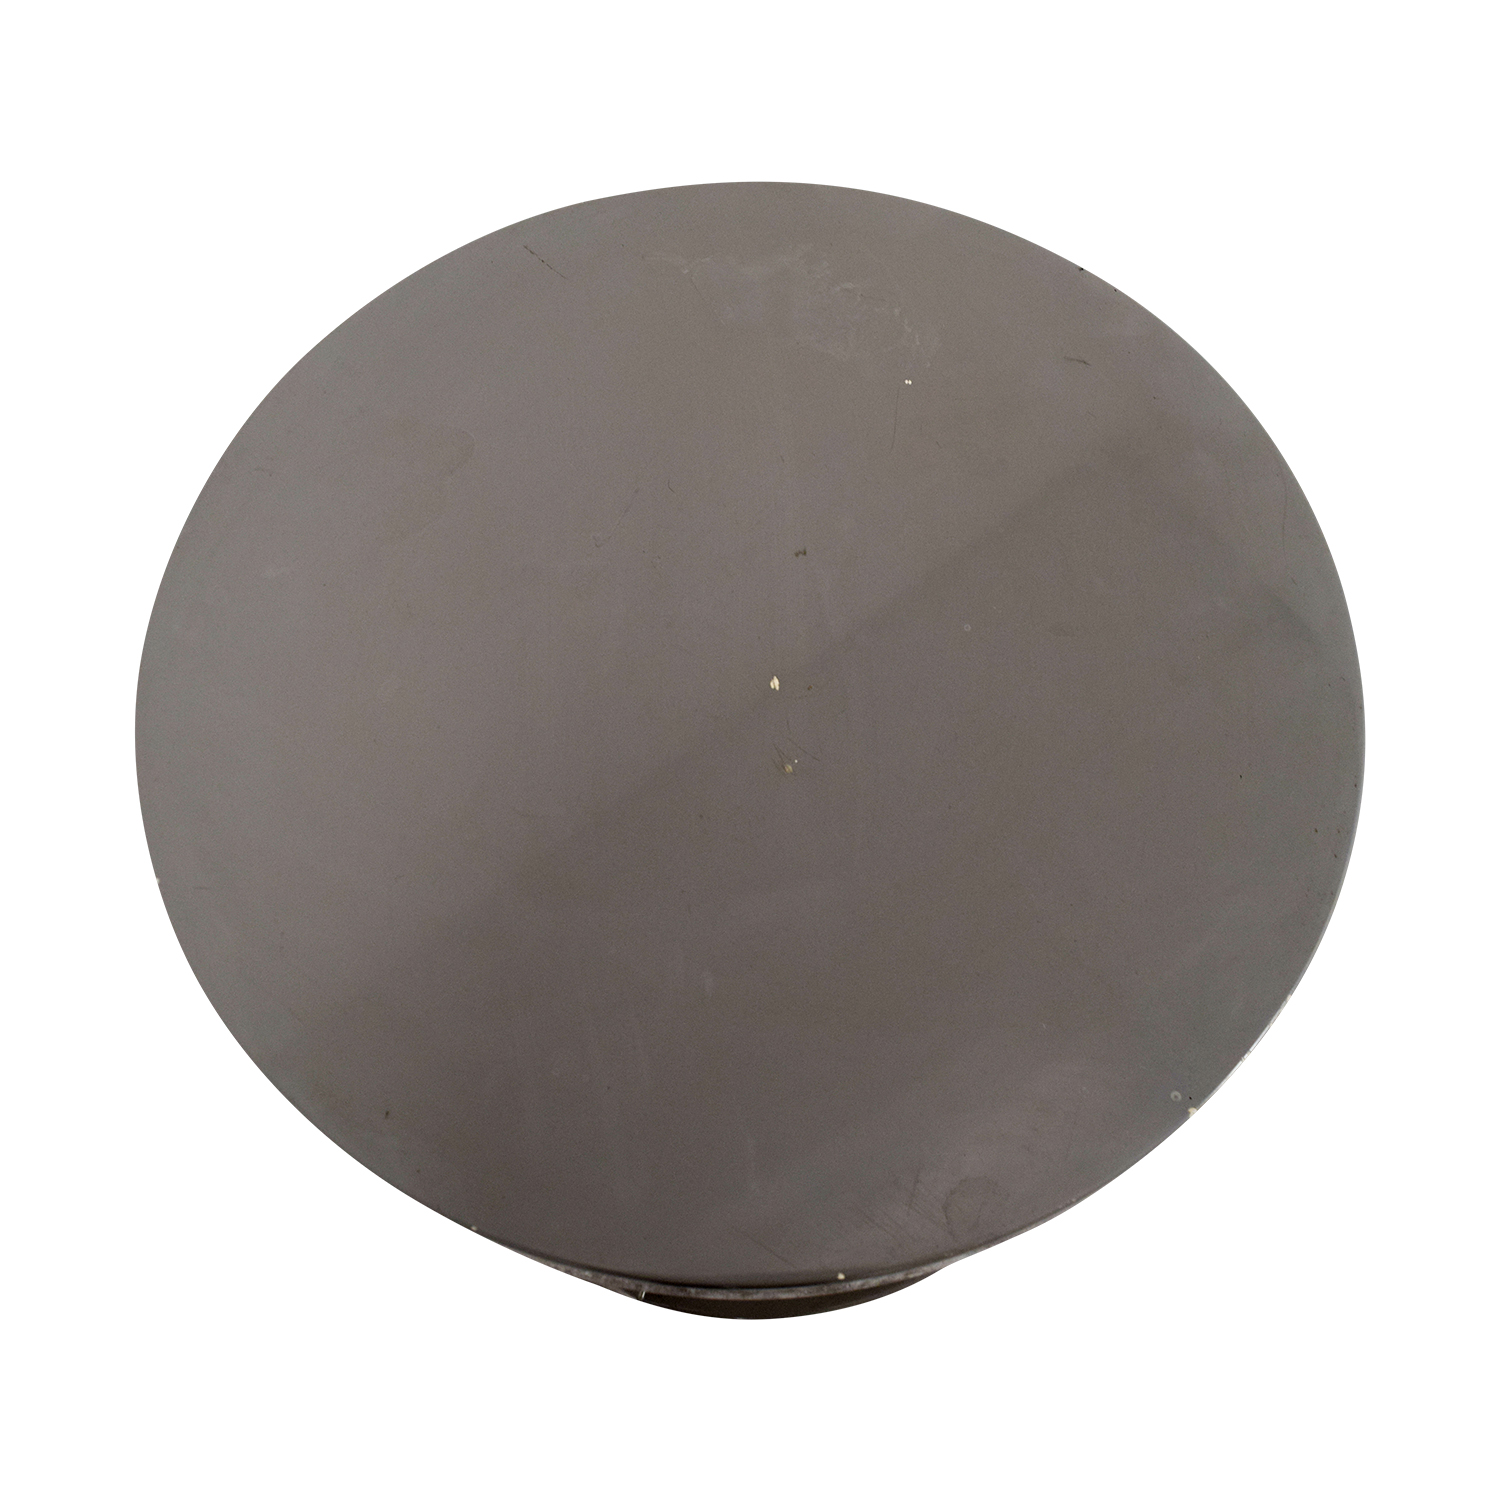 Furniture Masters Furniture Masters Round Grey End Table nyc